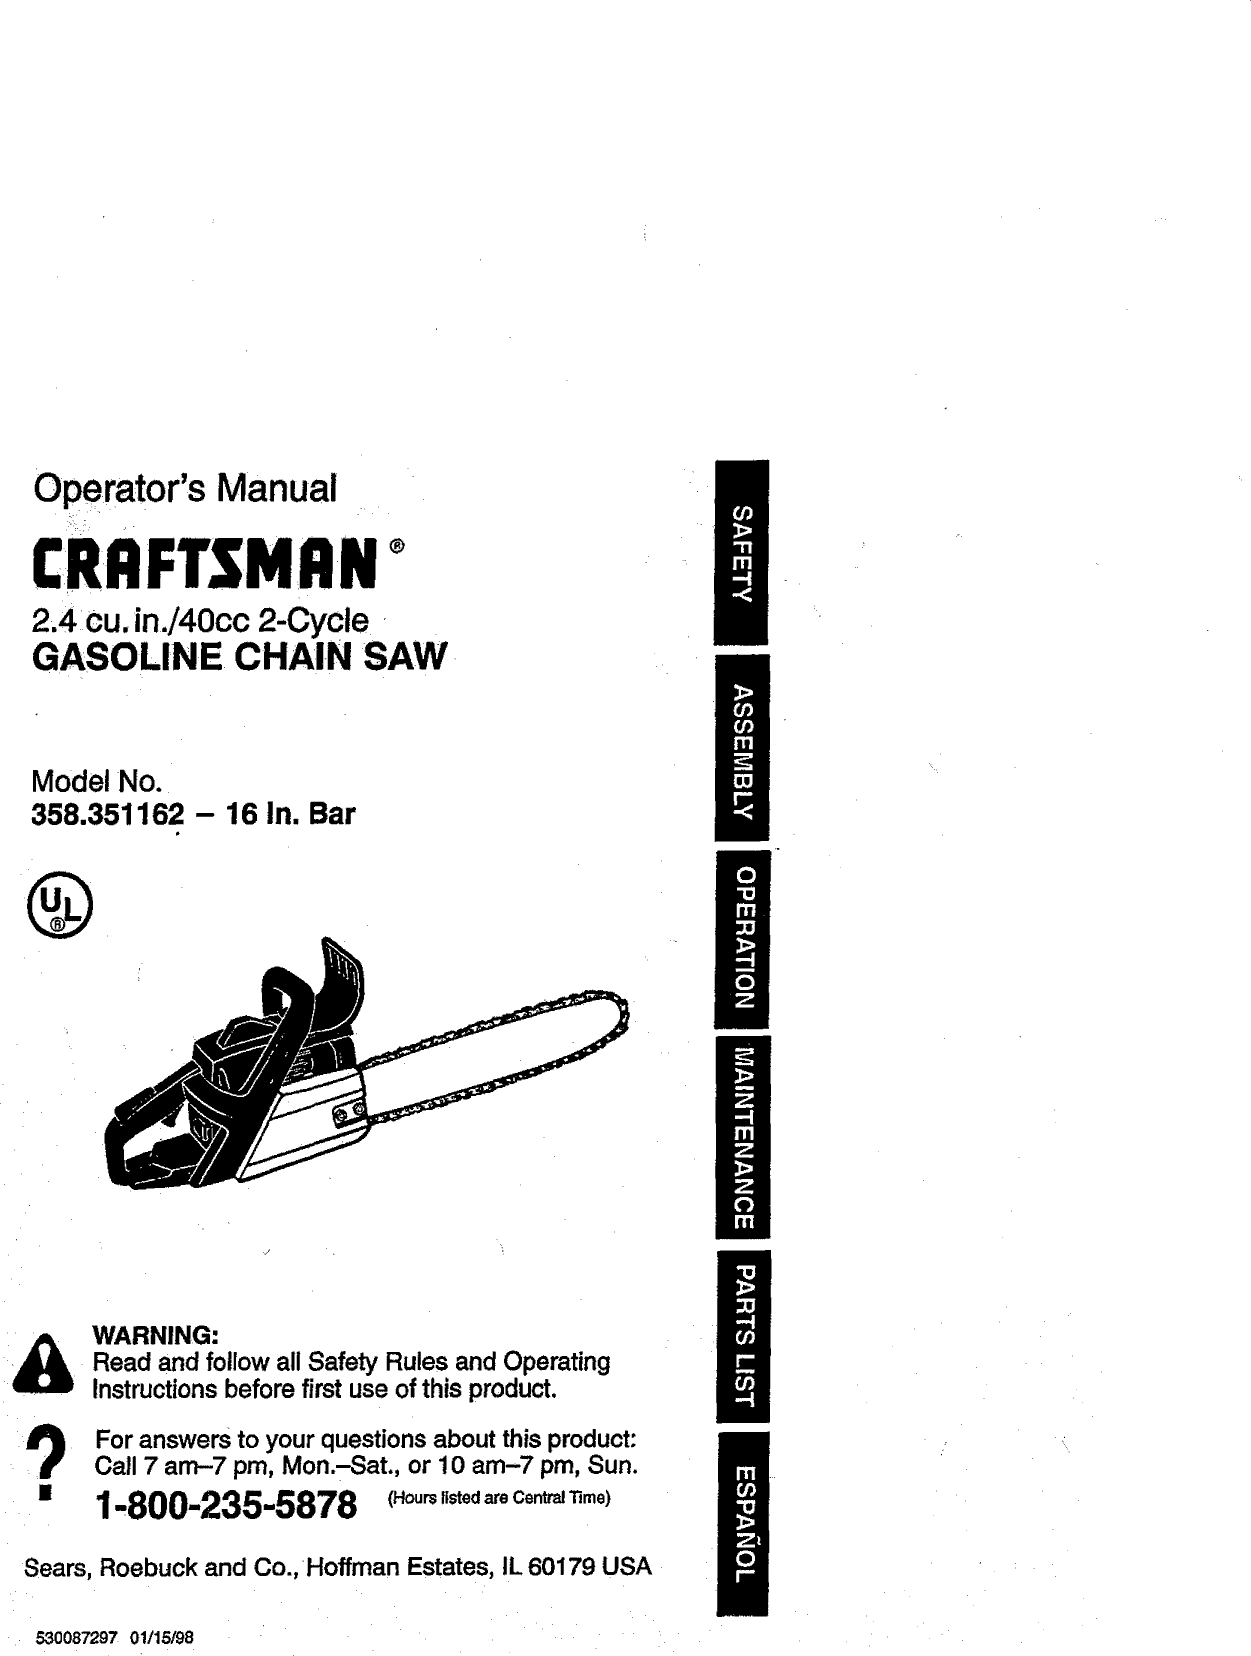 Craftsman 358351162 User Manual CHAINSAW Manuals And